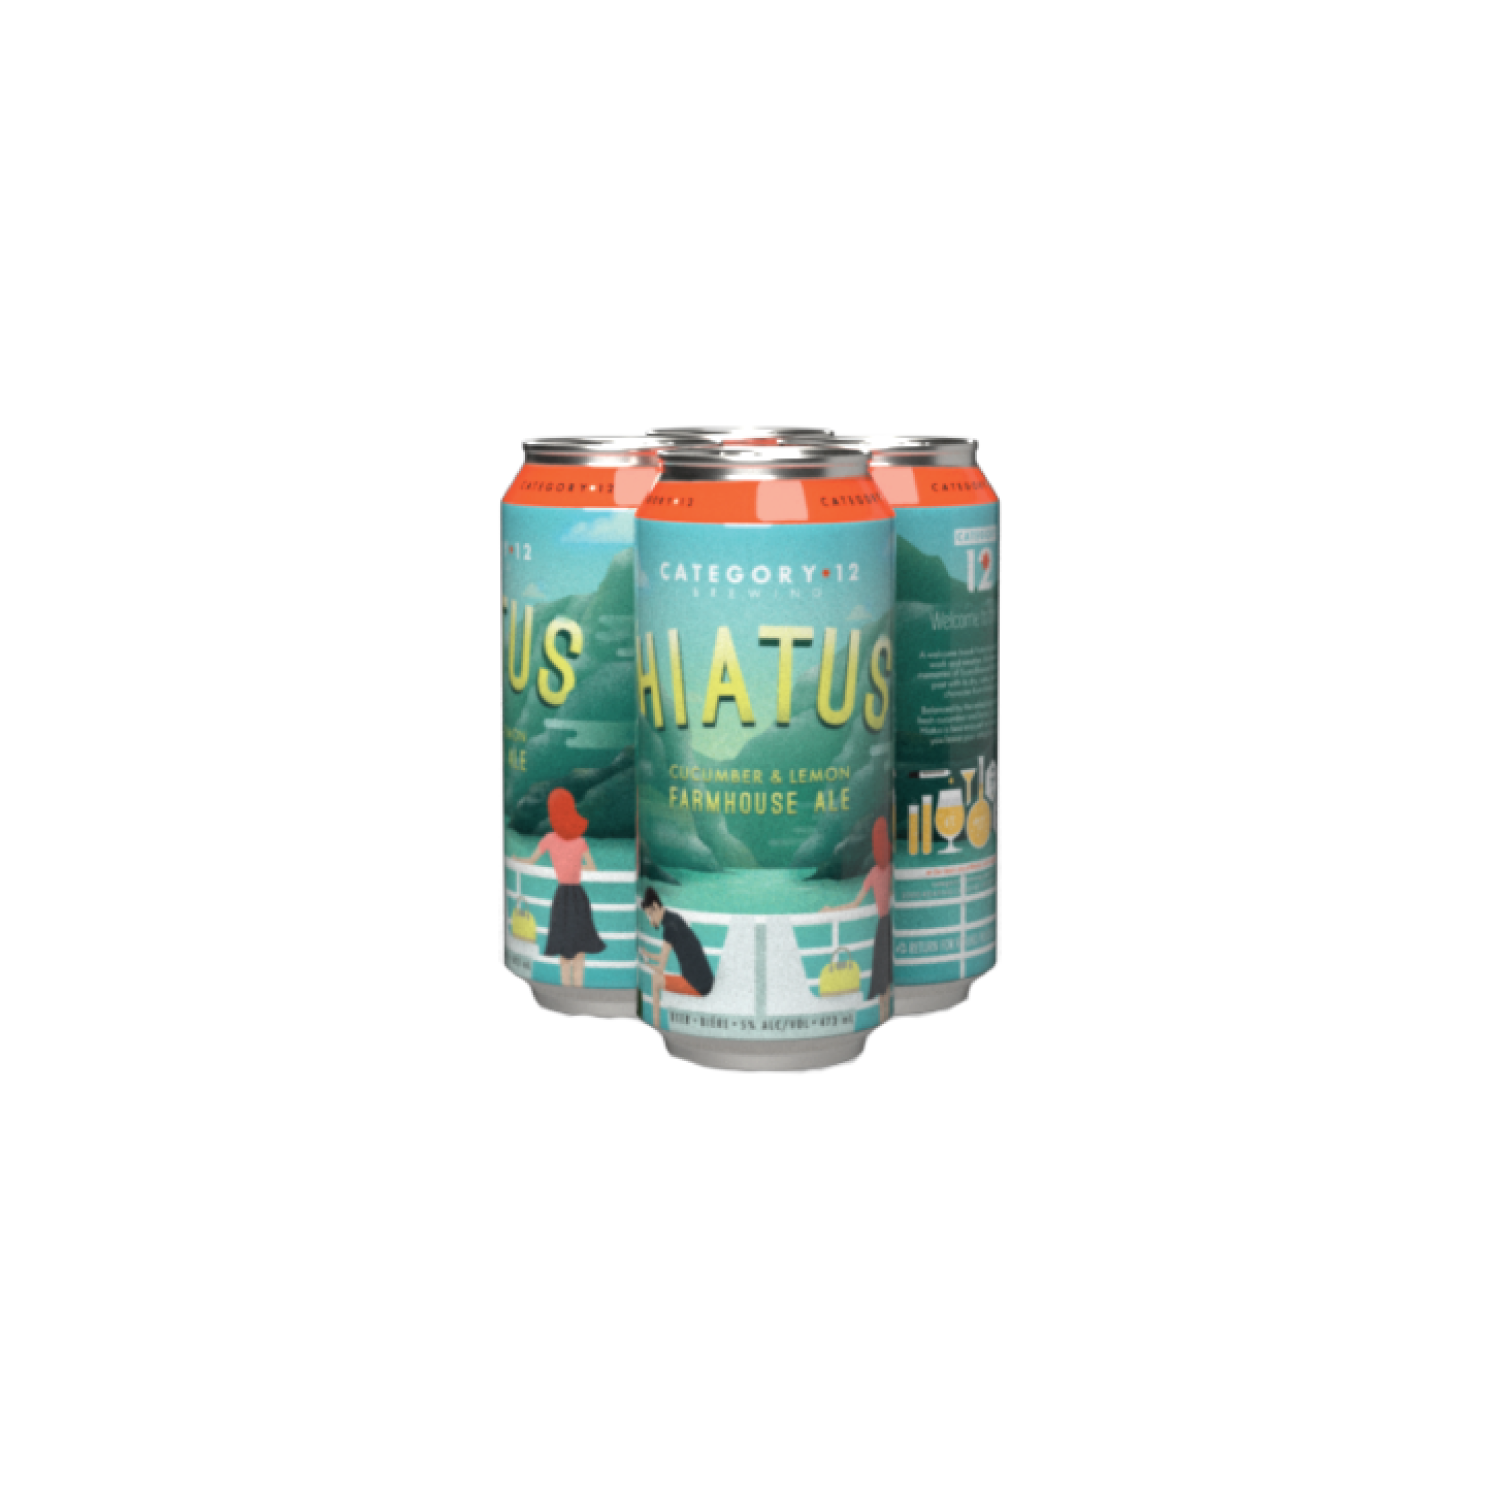 Category 12 Hiatus Cucumber and Lemon Farmhouse Ale - Escape the daily grind and take a